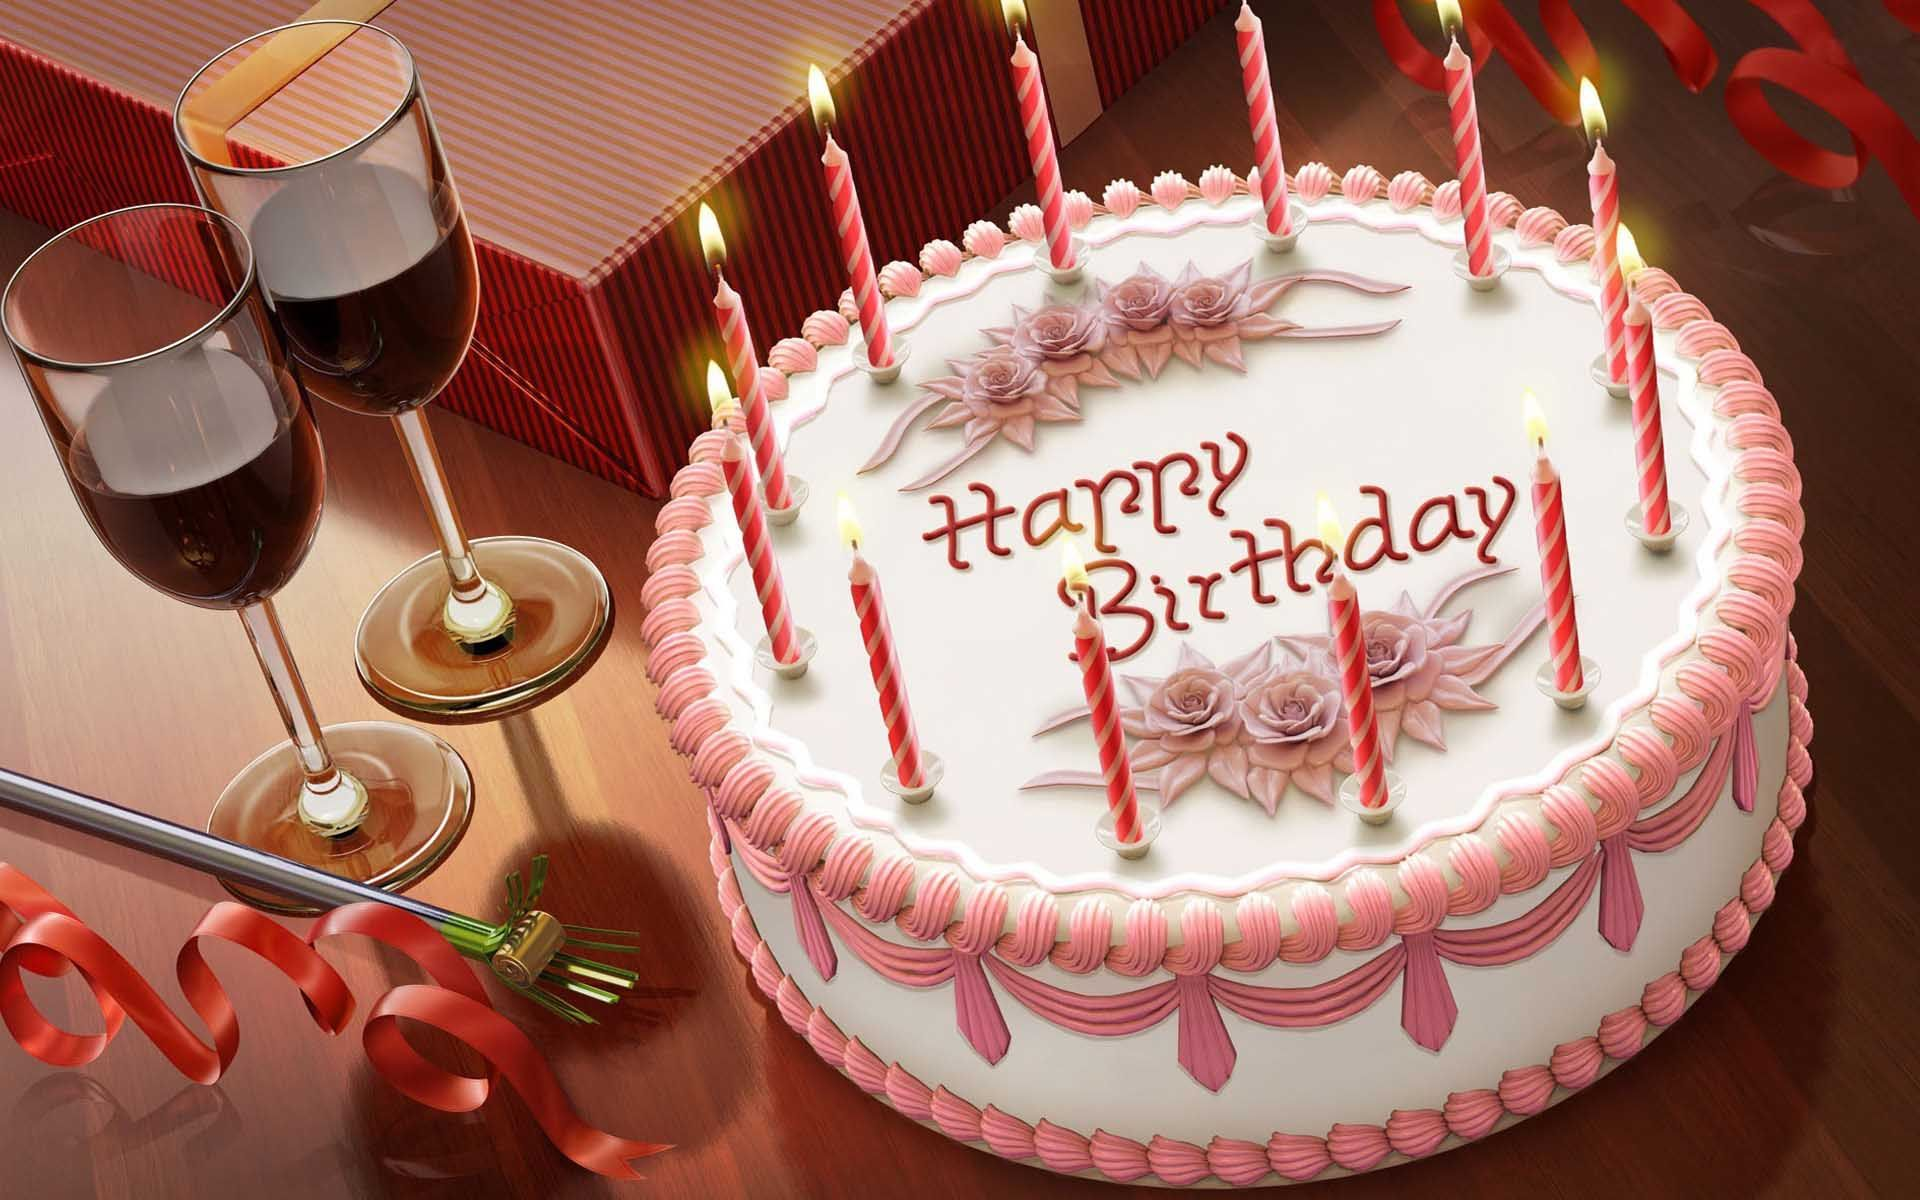 birthday wallpaper free download for mobile ; pink_butterscotch_birthday_cake